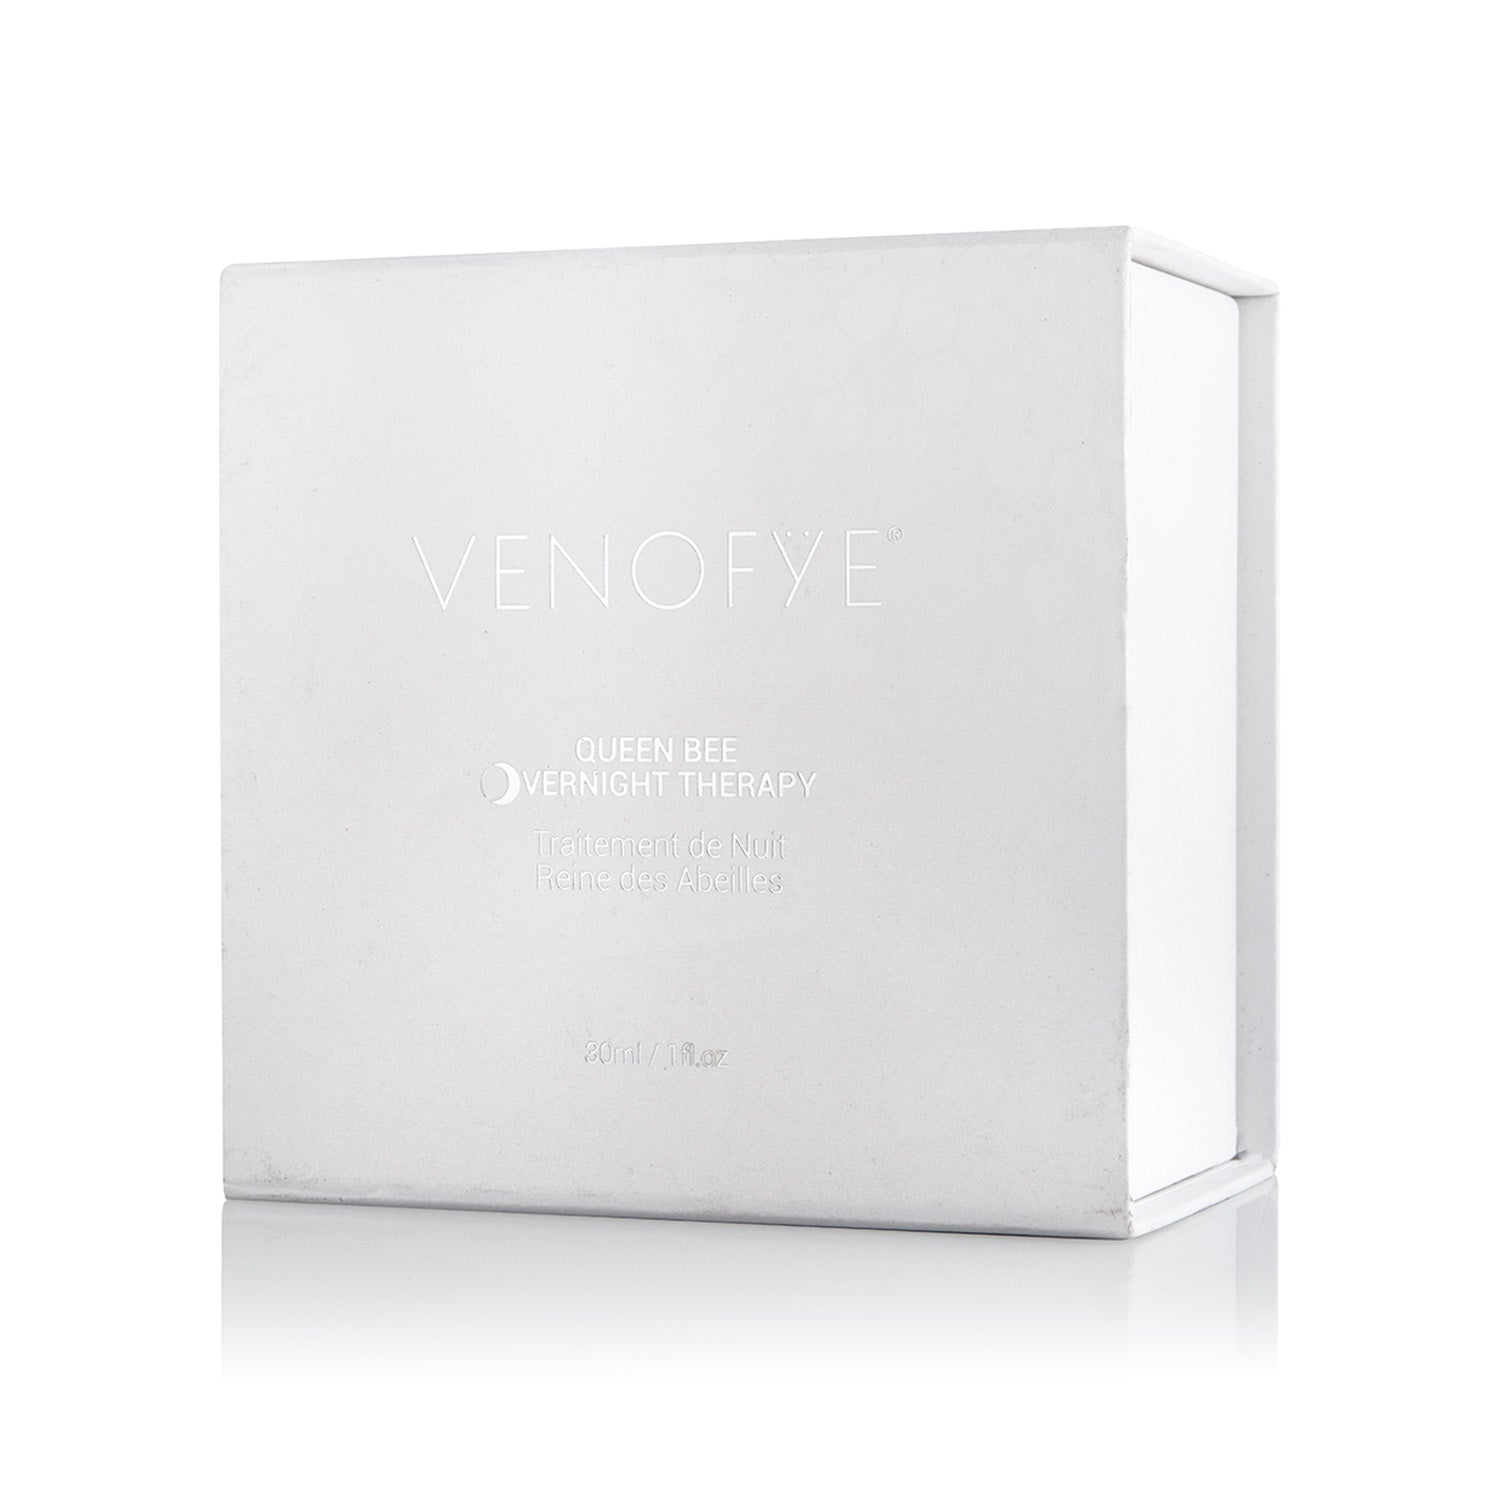 Venofye Facial Cream for Oily Skin